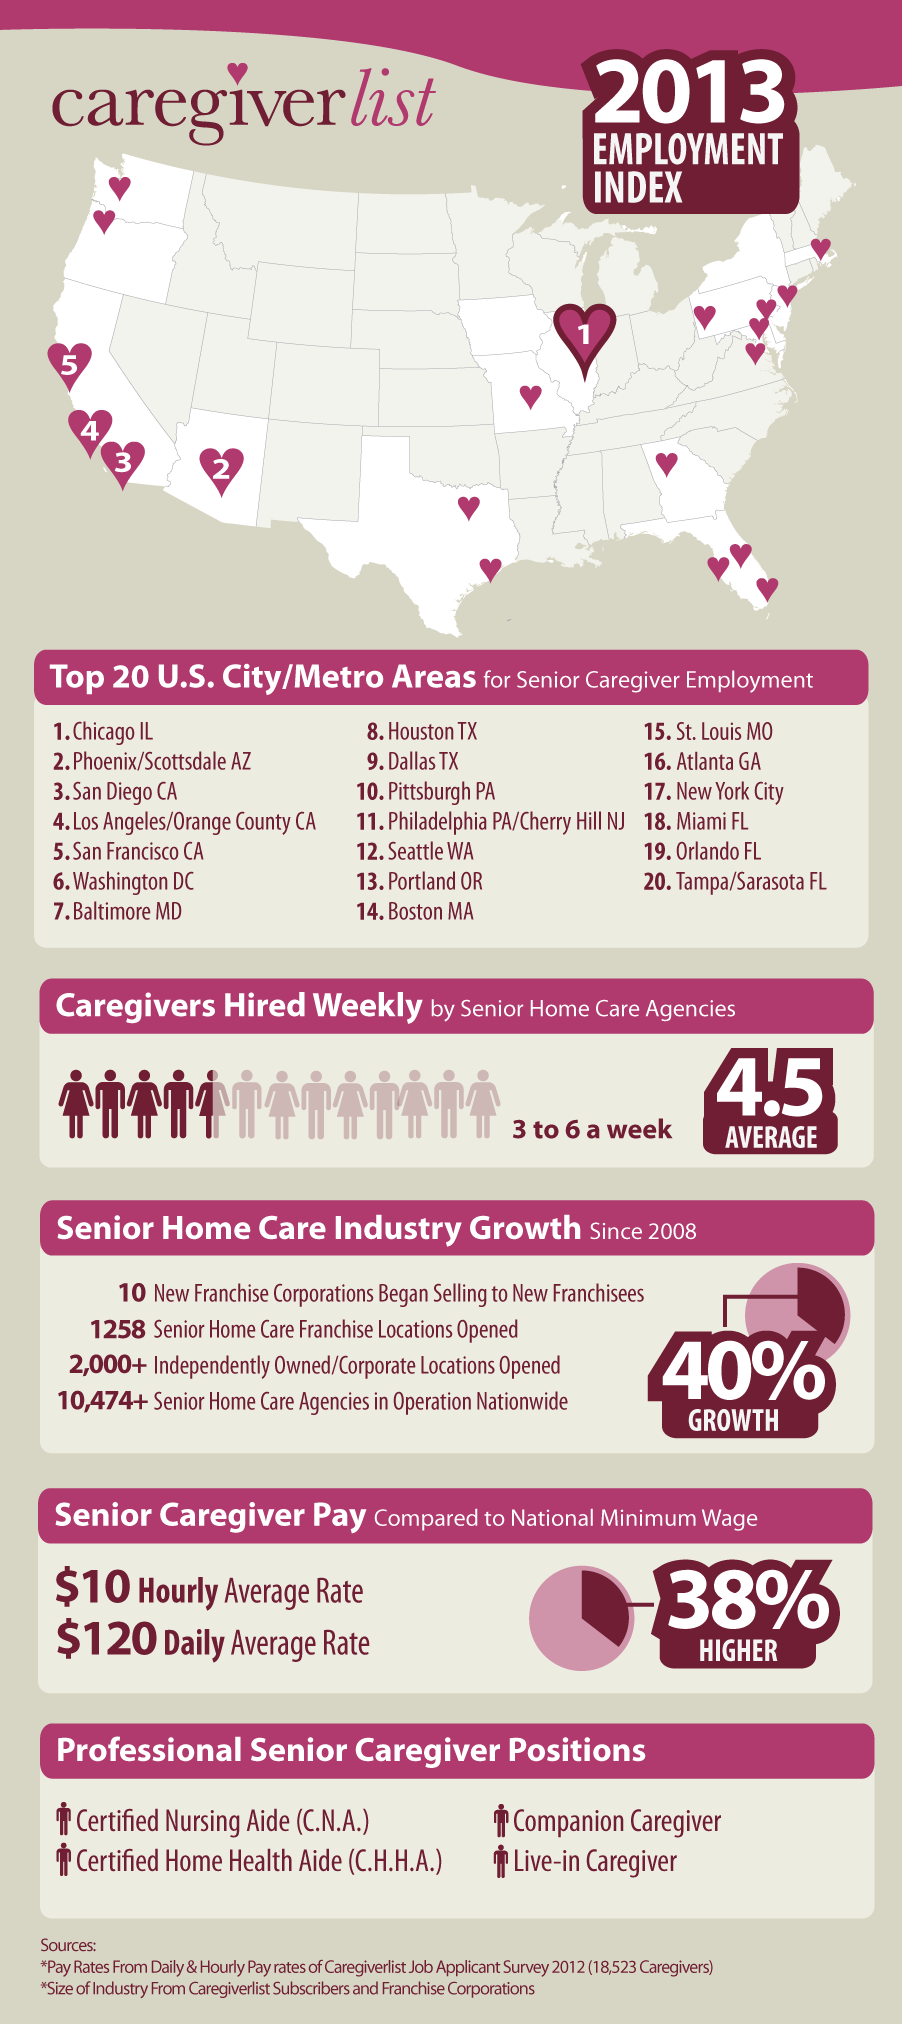 Senior care news caregiverlist apply for caregiver and senior care news caregiverlist apply for caregiver and certified nursing assistant jobs in xflitez Image collections